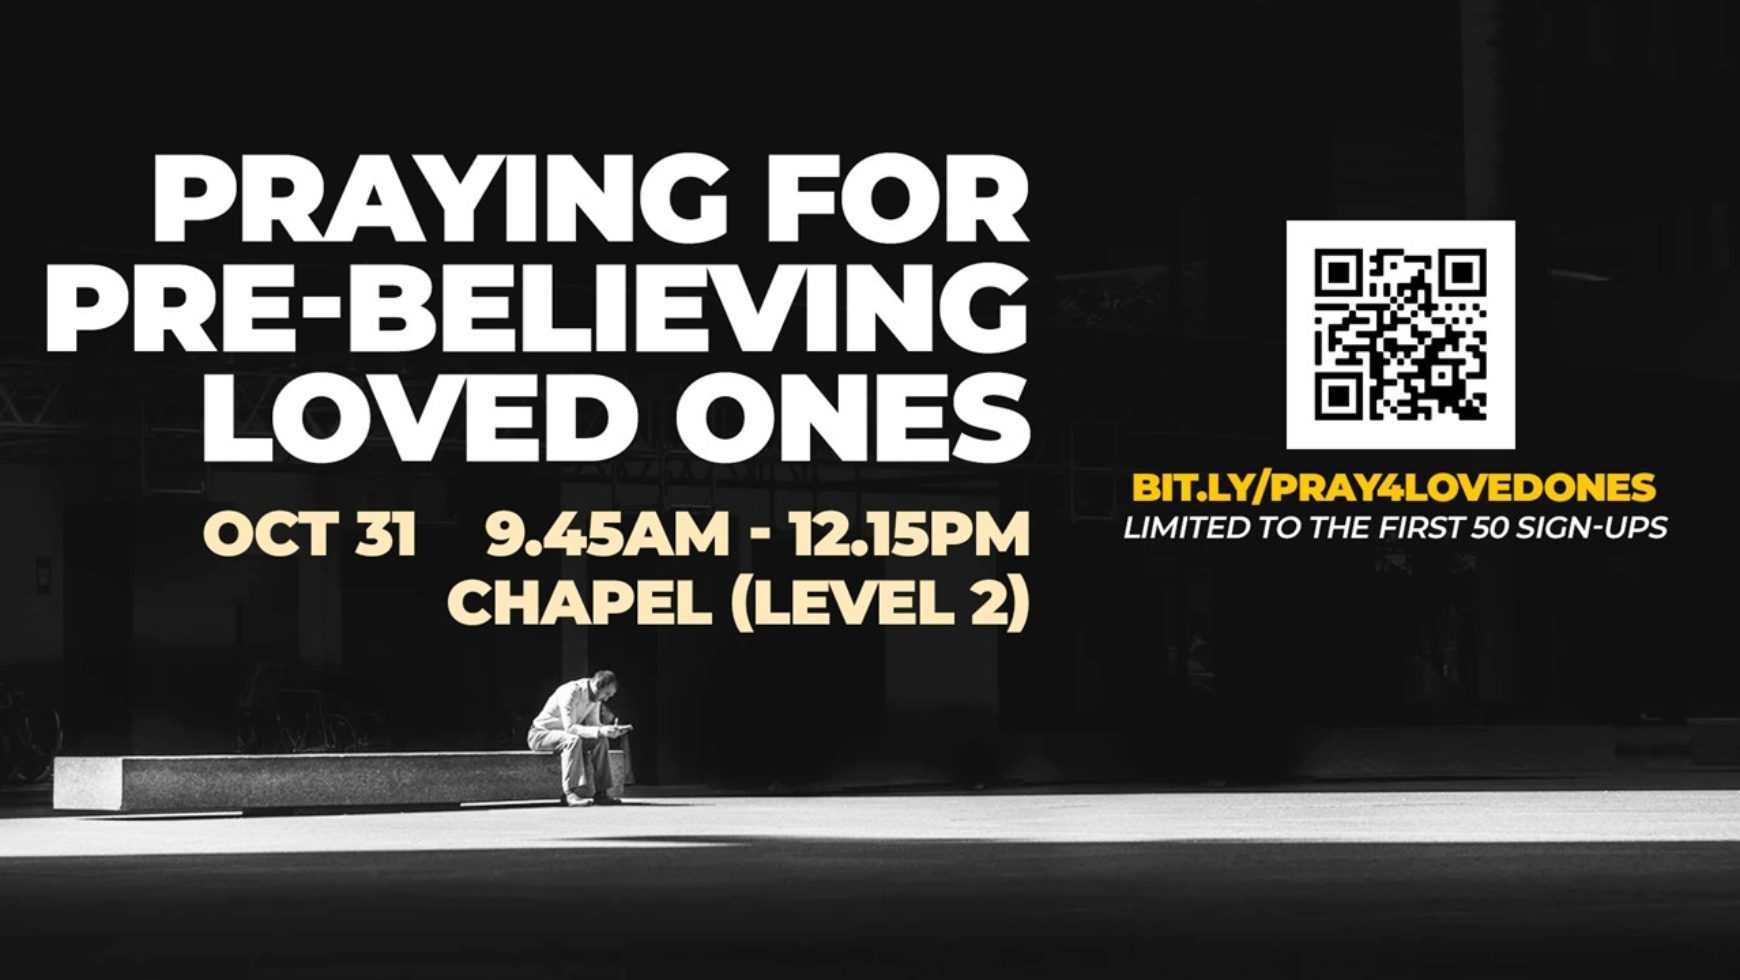 PRAYING FOR PRE-BELIEVING LOVED ONES